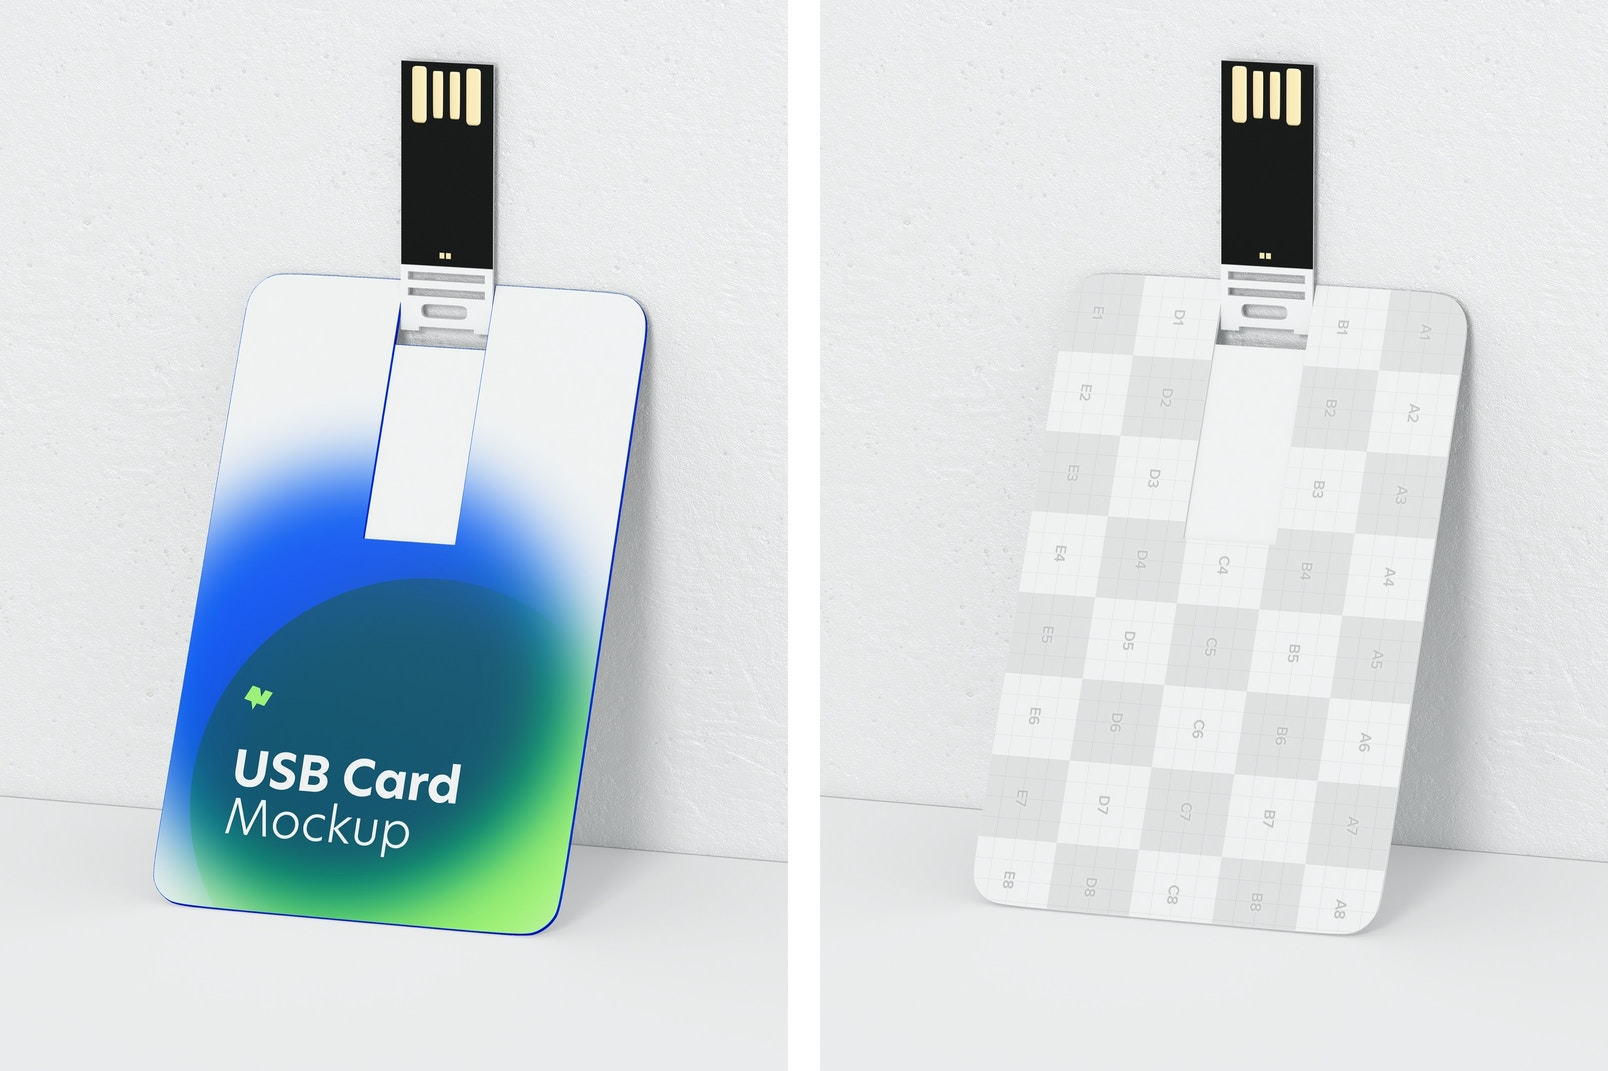 USB Cards Mockup, Perspective View